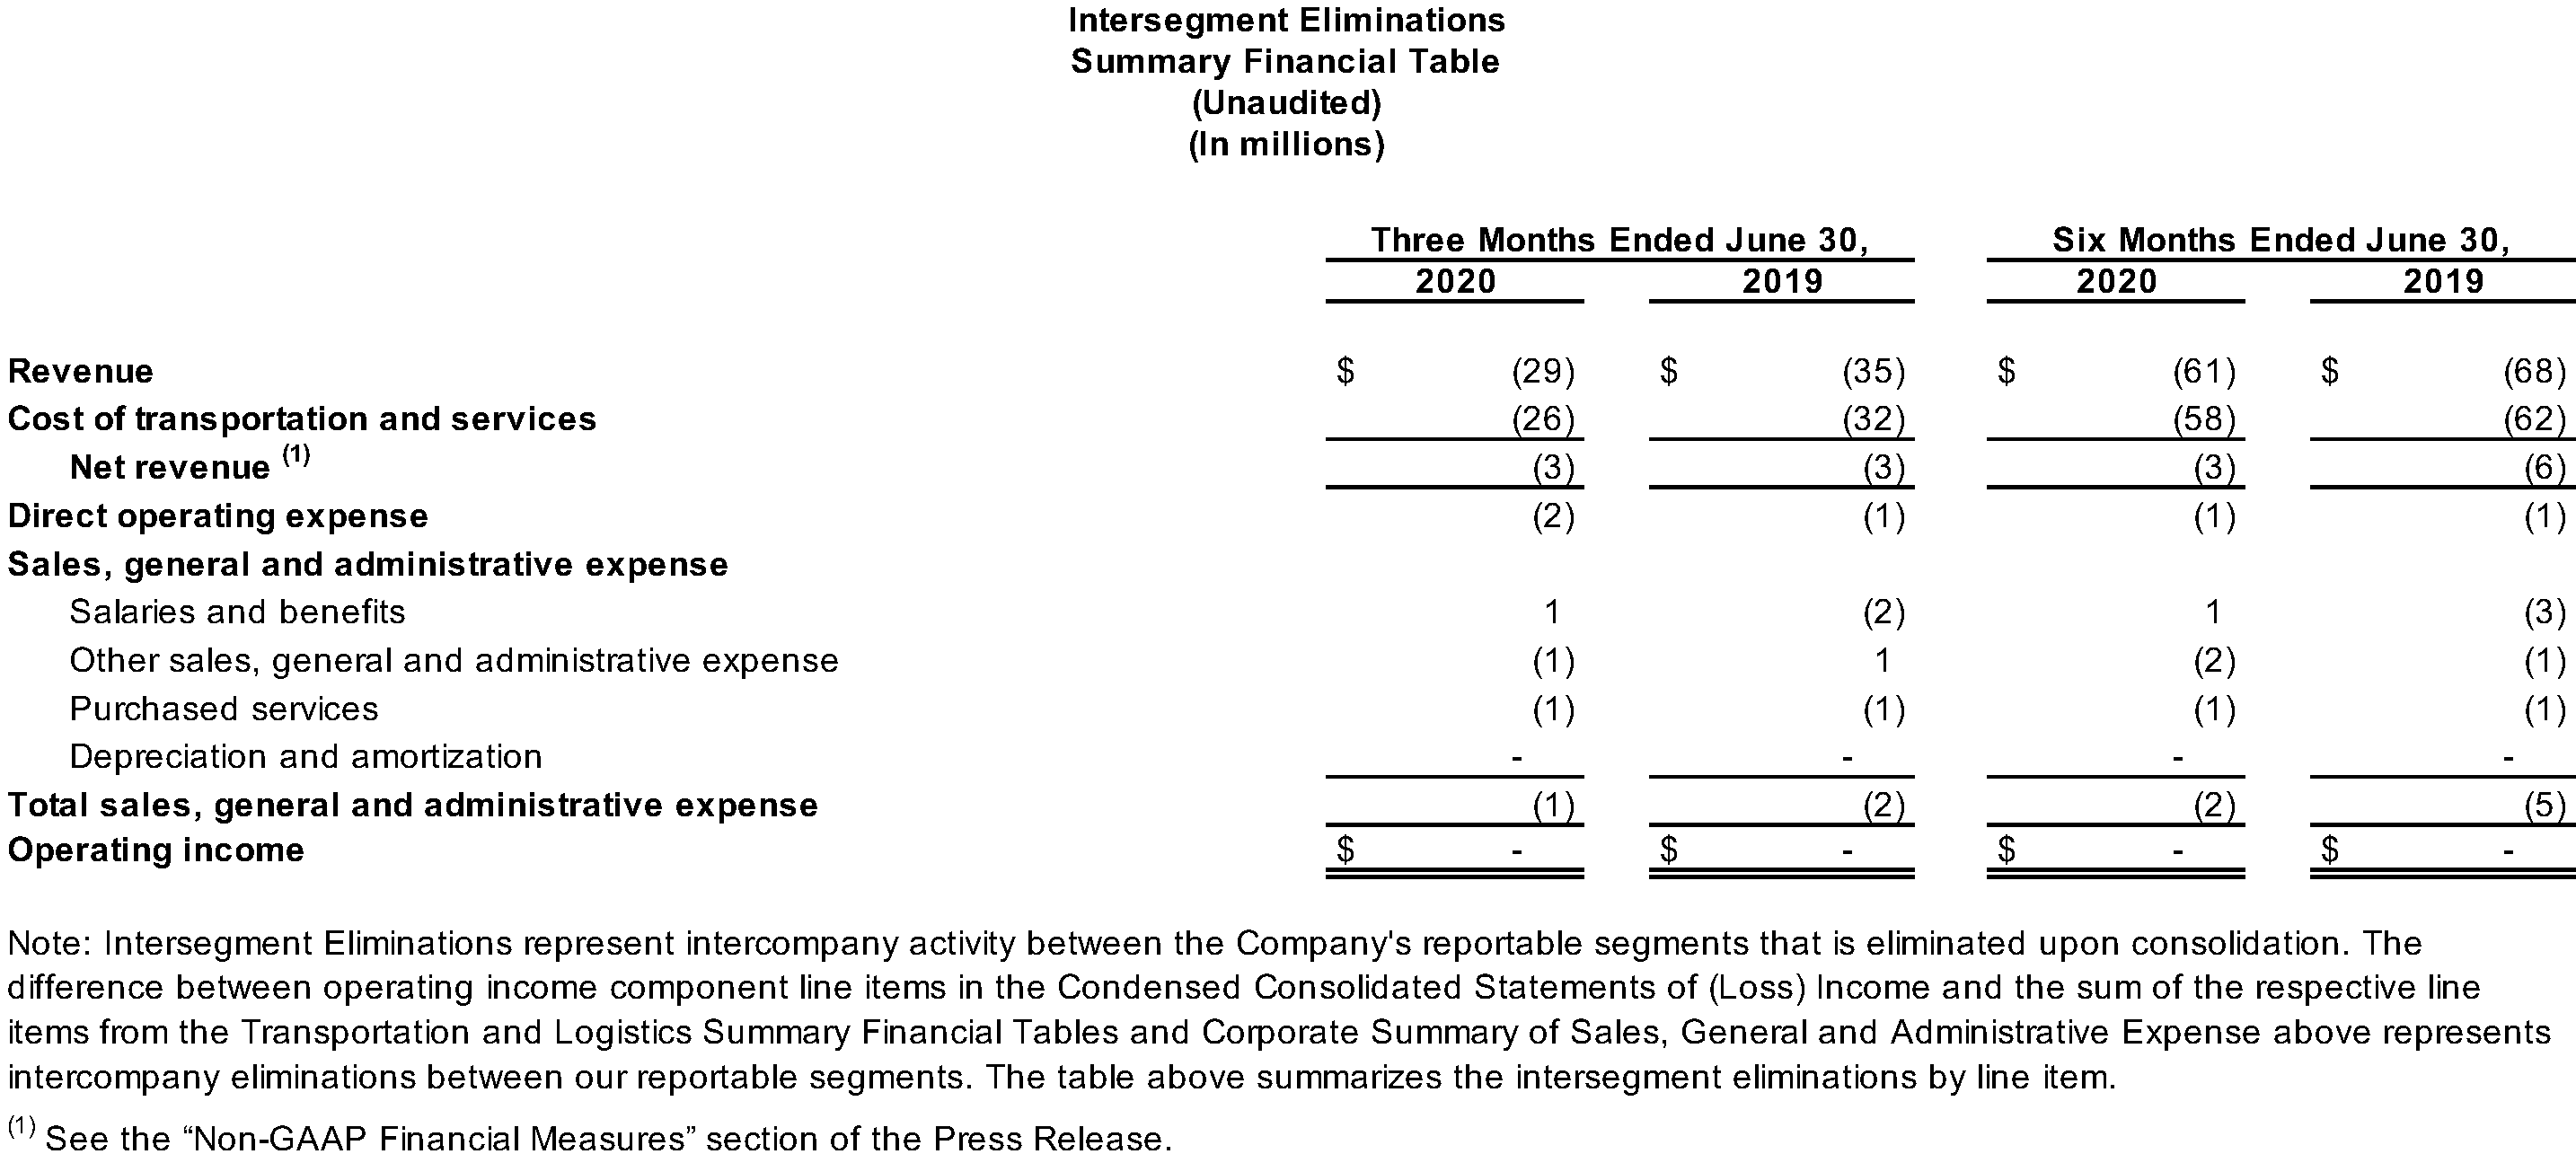 Intersegment Eliminations Summary Financial Table